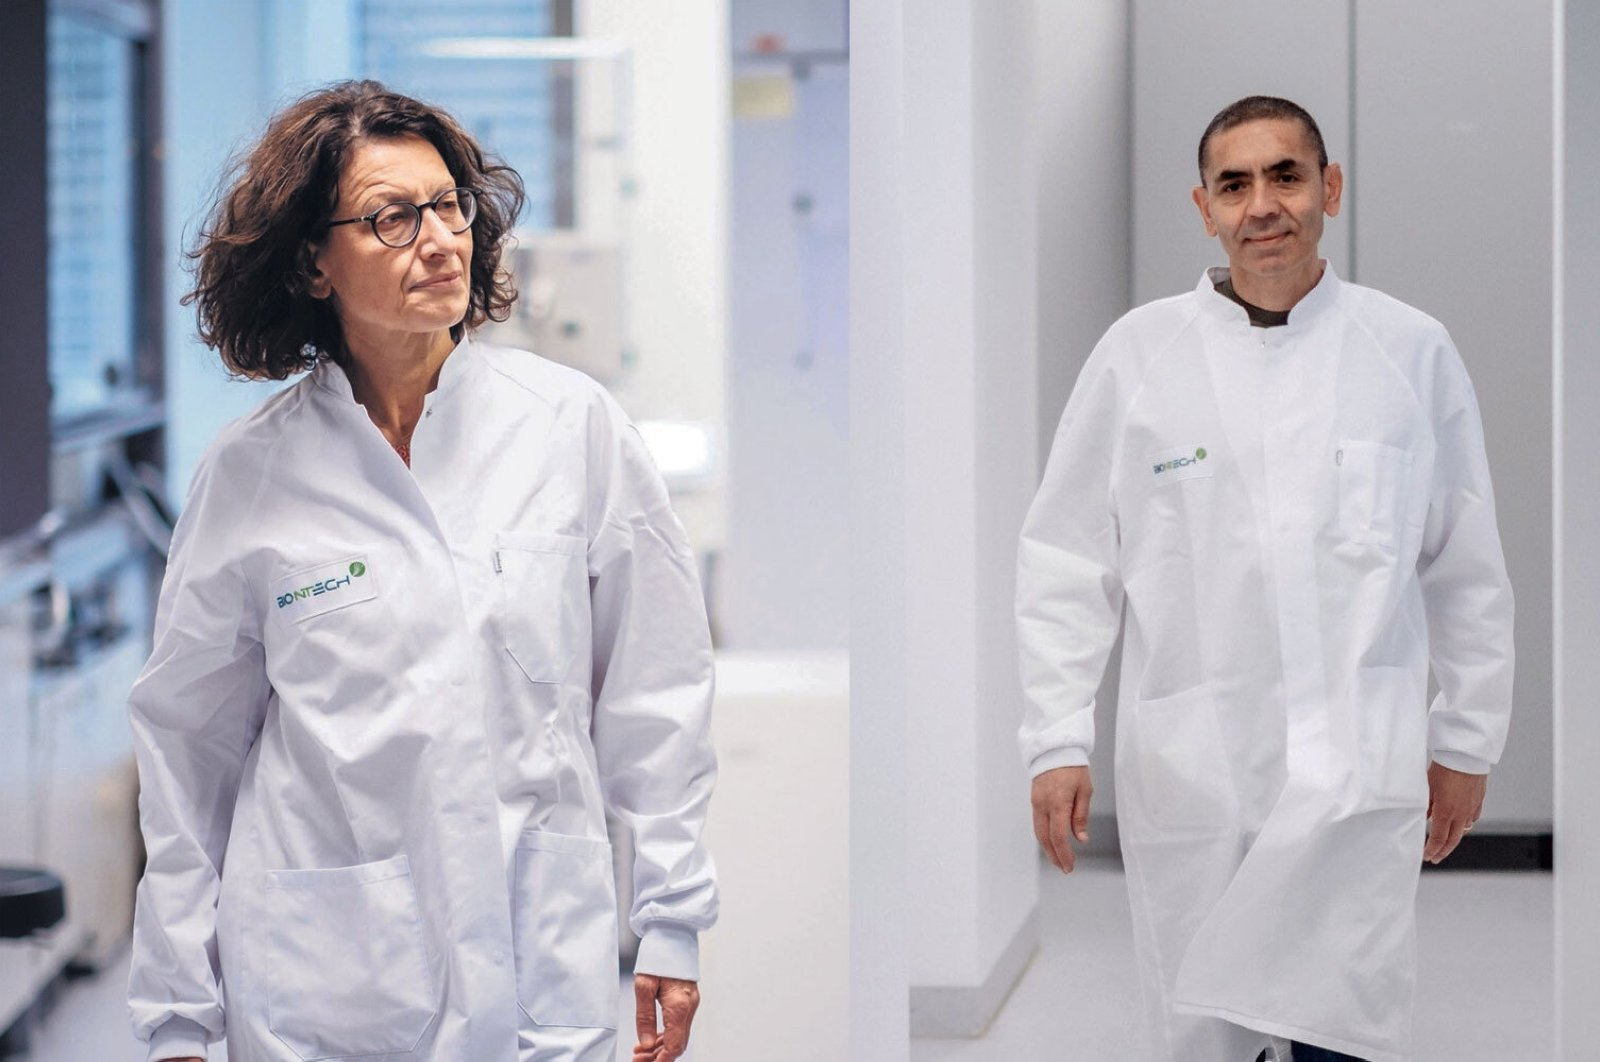 Özlem Türeci, chief medical officer of Biontech, and Uğur Şahin, CEO and co-founder of the company walk through one of the company's laboratories in file photos provided onSept. 2, 2020 and Nov. 12, 2020, respectively. (Photos by DPA and DHA)